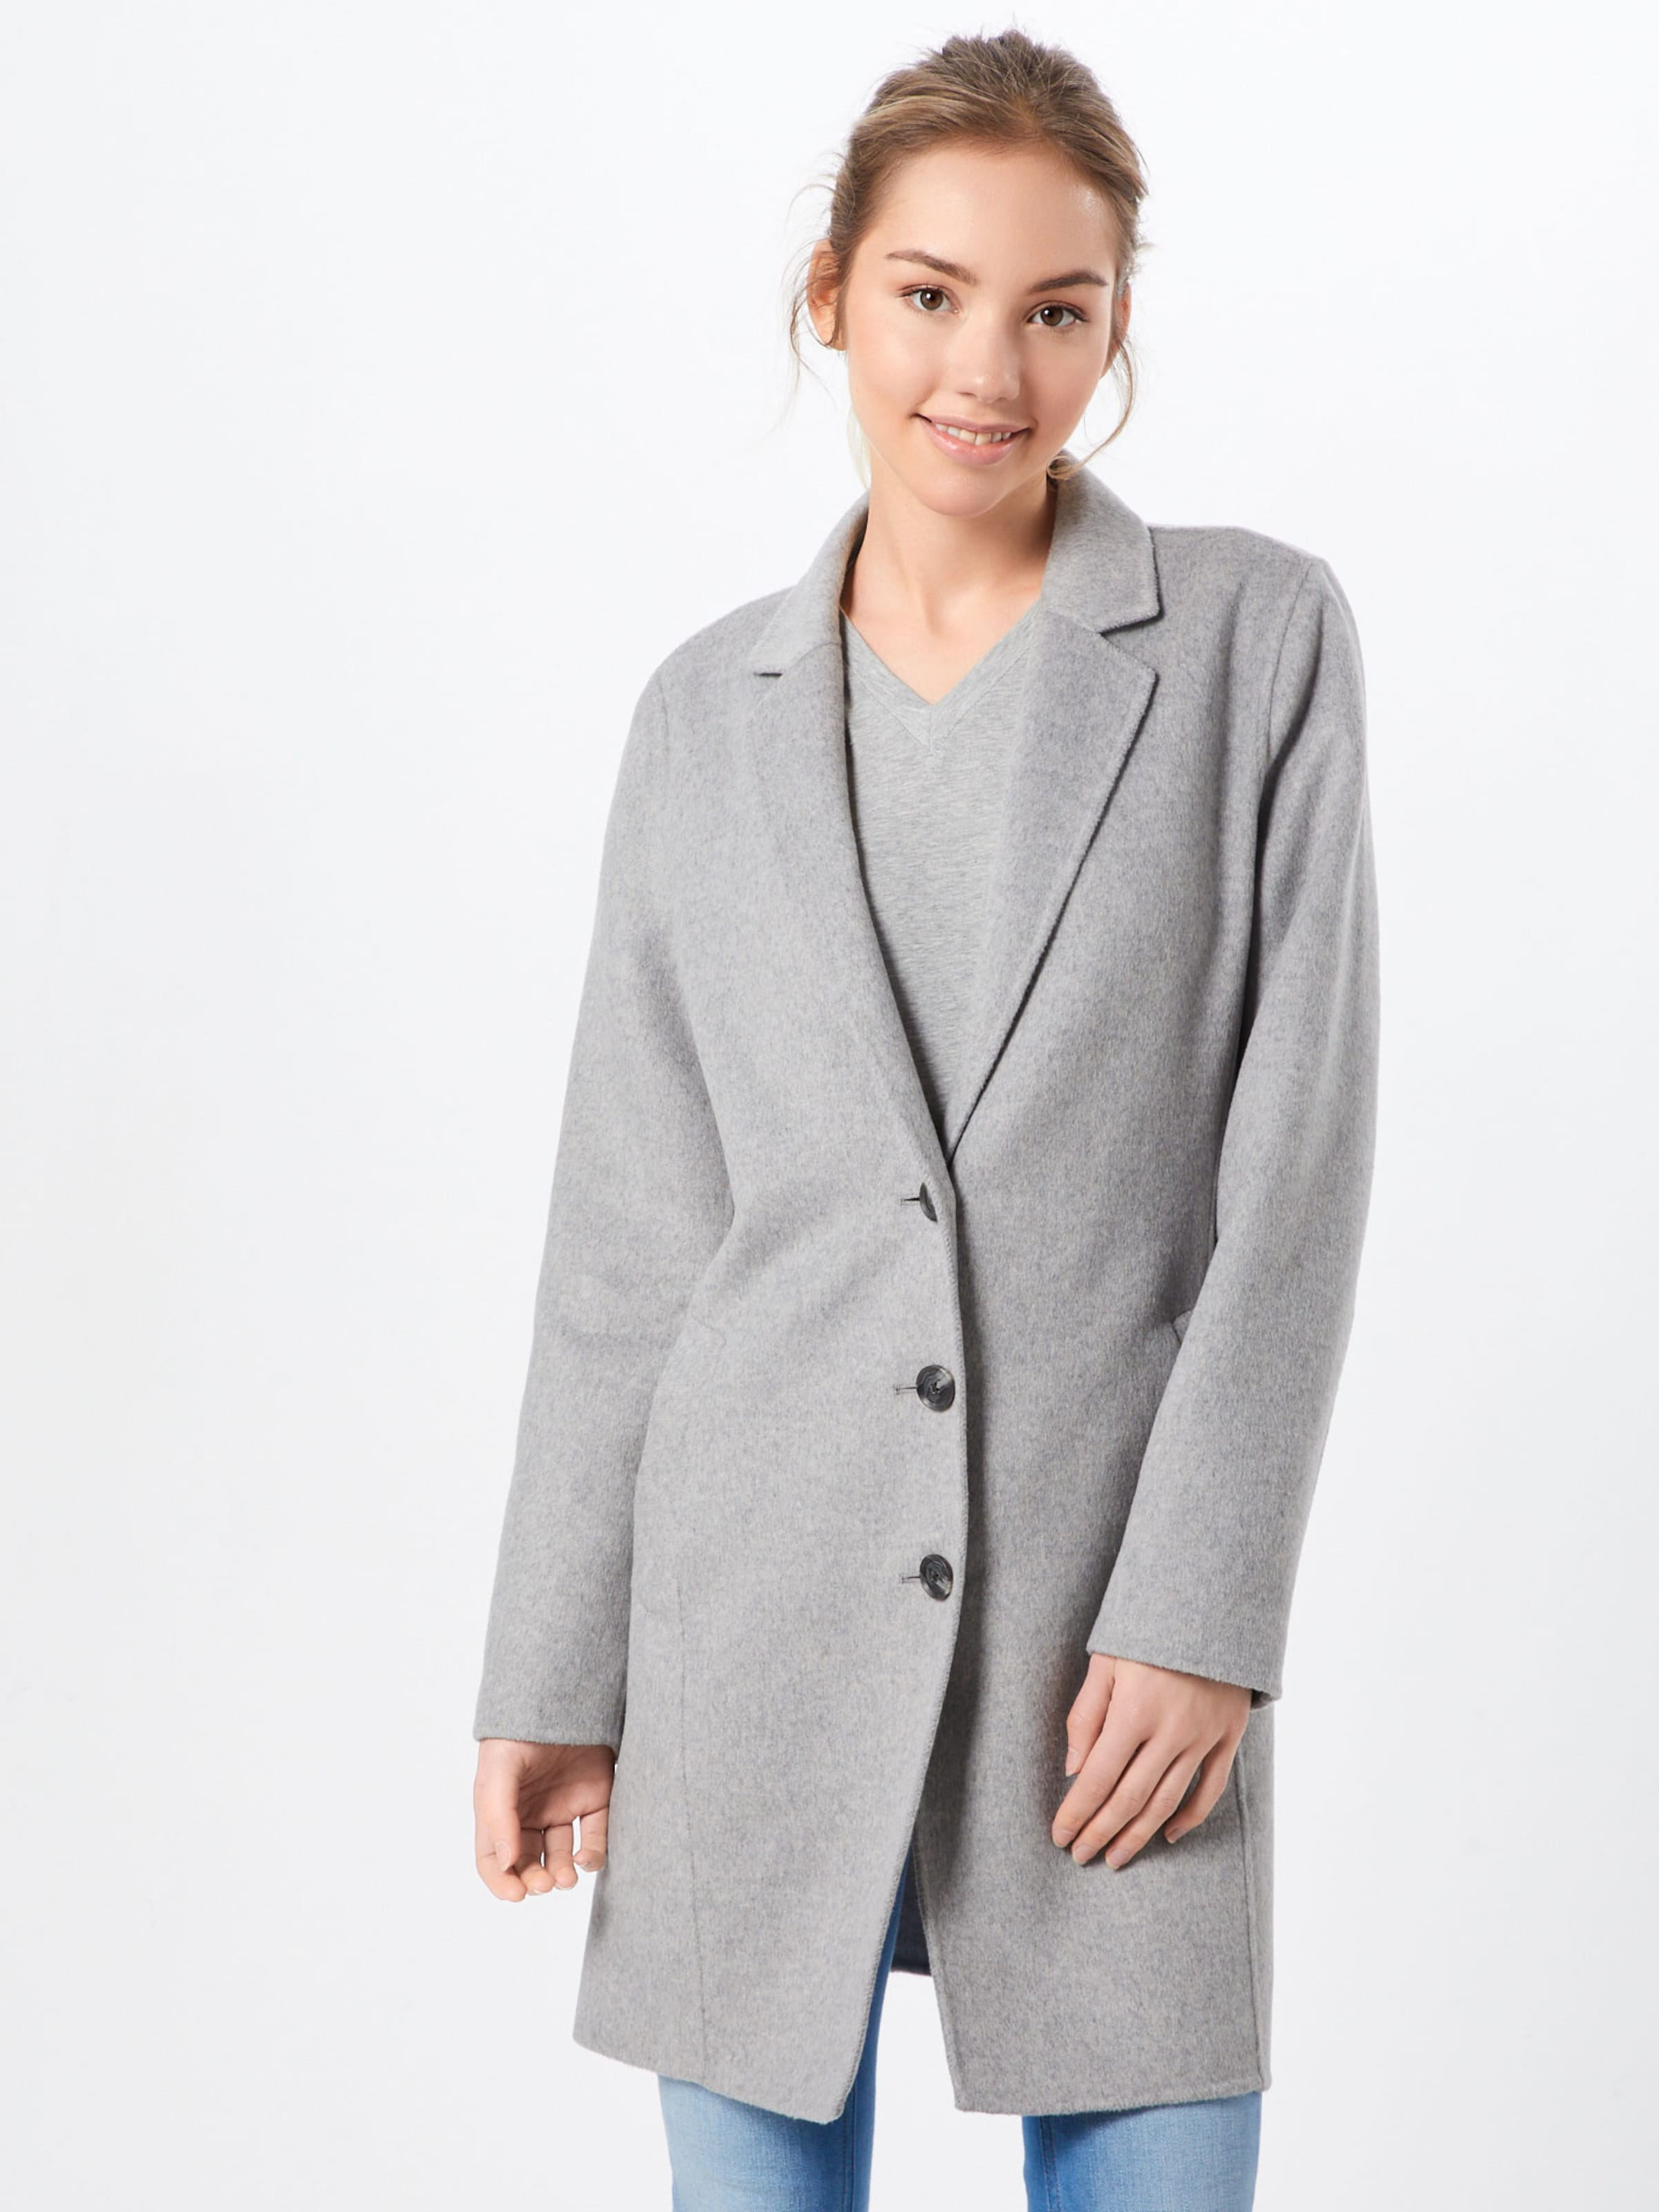 Coat' Republic Gris Top Banana 'double Manteau En Chiné Mi saison Face nwXOP80k